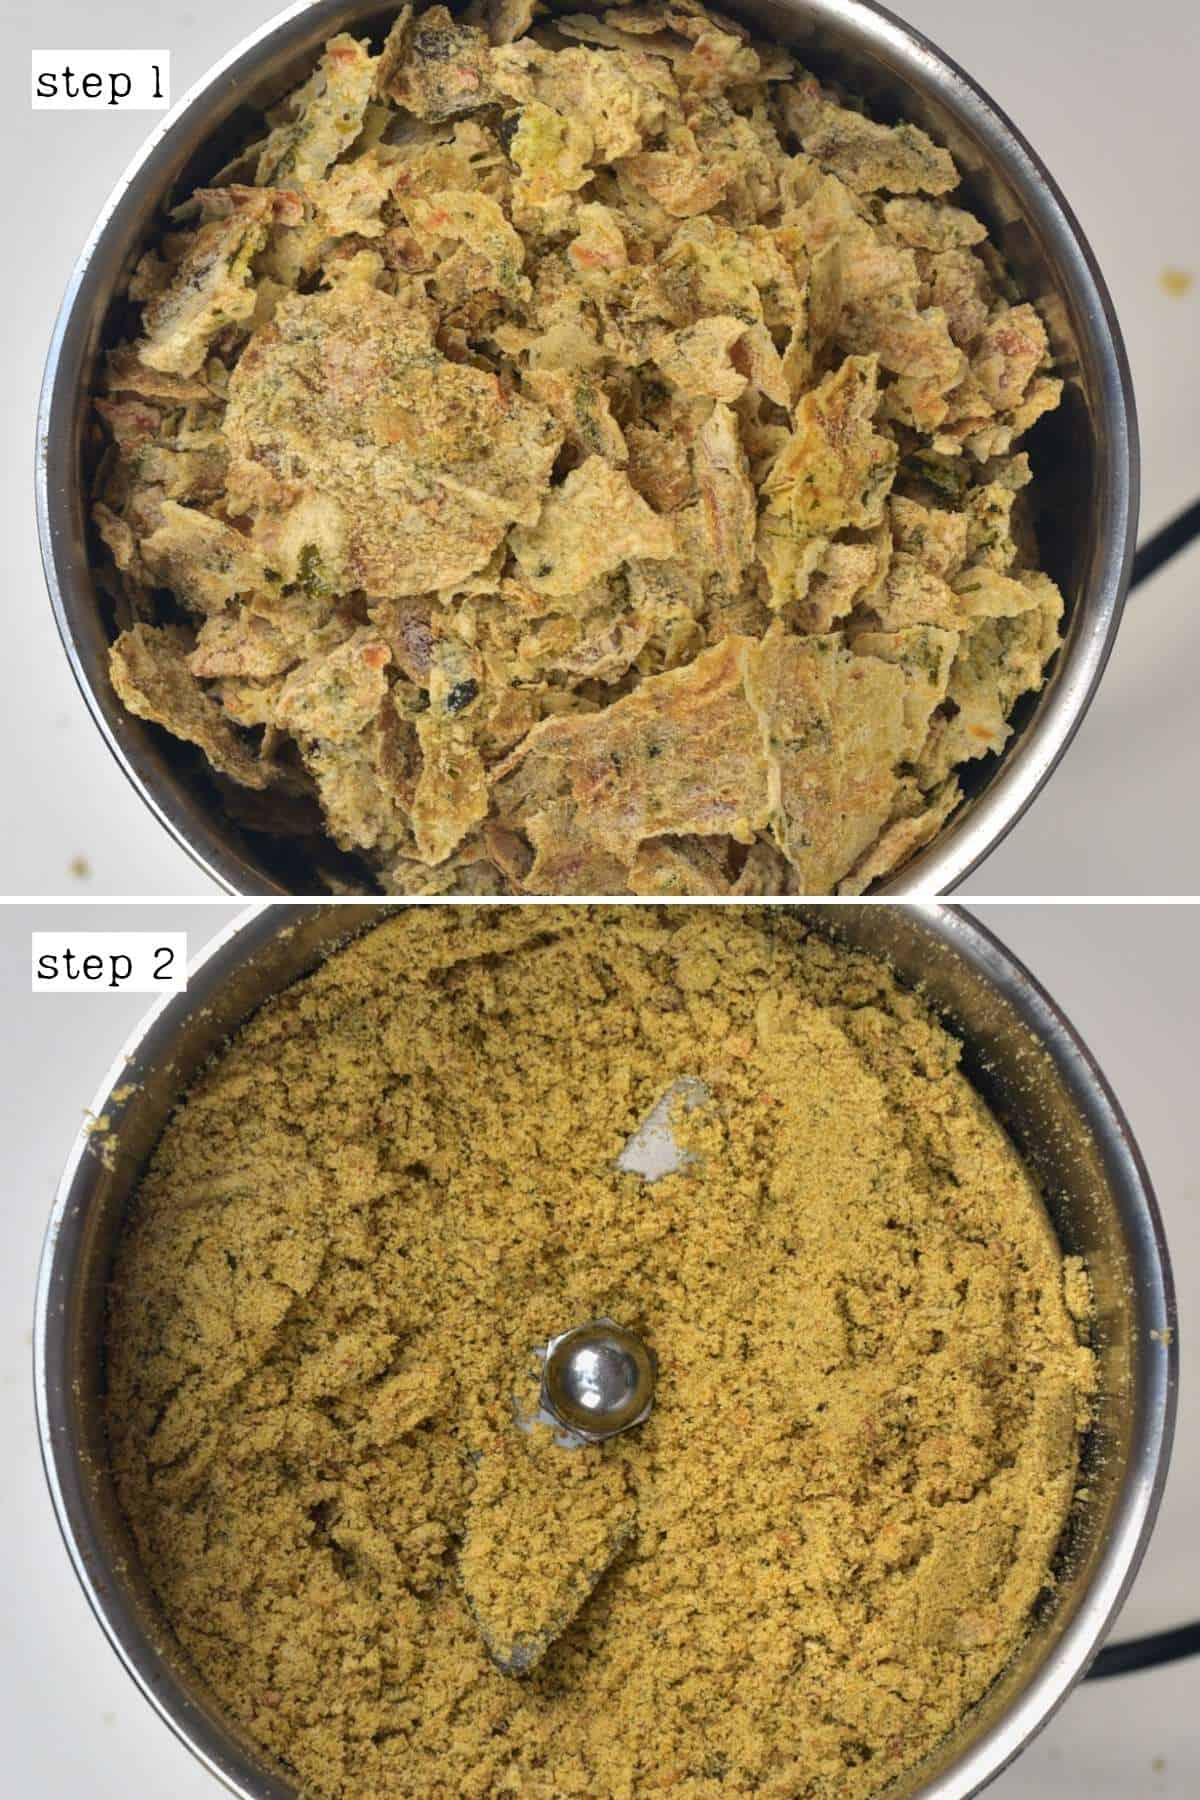 Grinding vegetable stock into powder